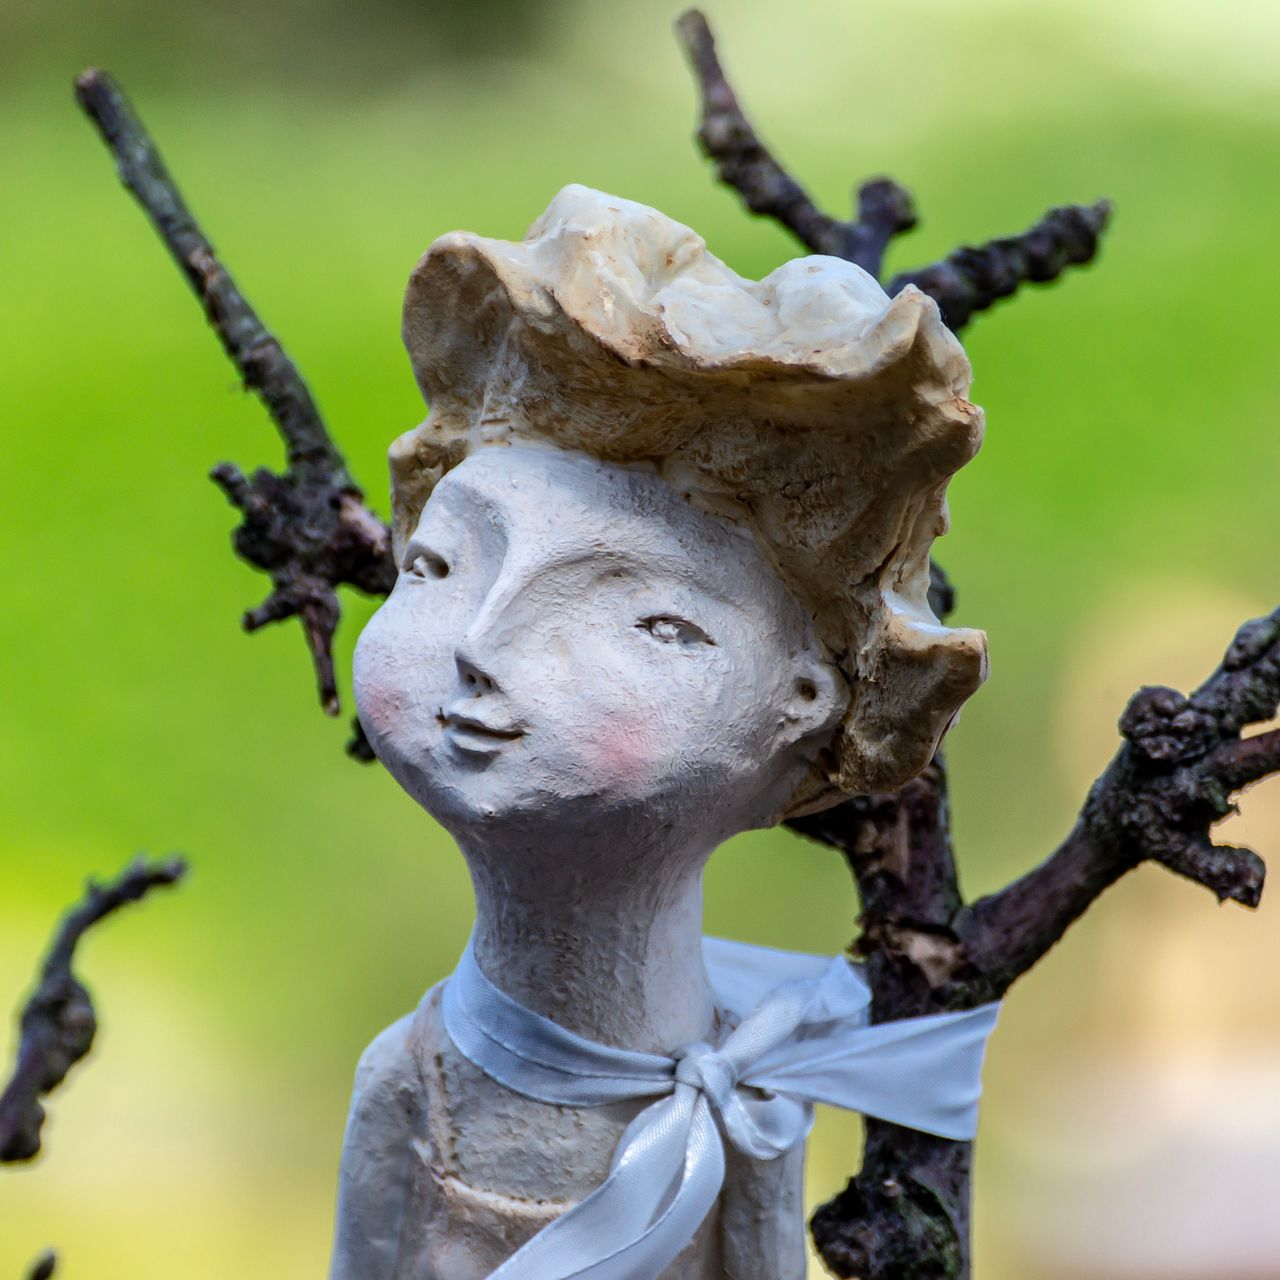 representation, human representation, sculpture, statue, close-up, creativity, art and craft, no people, focus on foreground, day, plant, female likeness, nature, tree, male likeness, craft, outdoors, growth, emotion, selective focus, angel